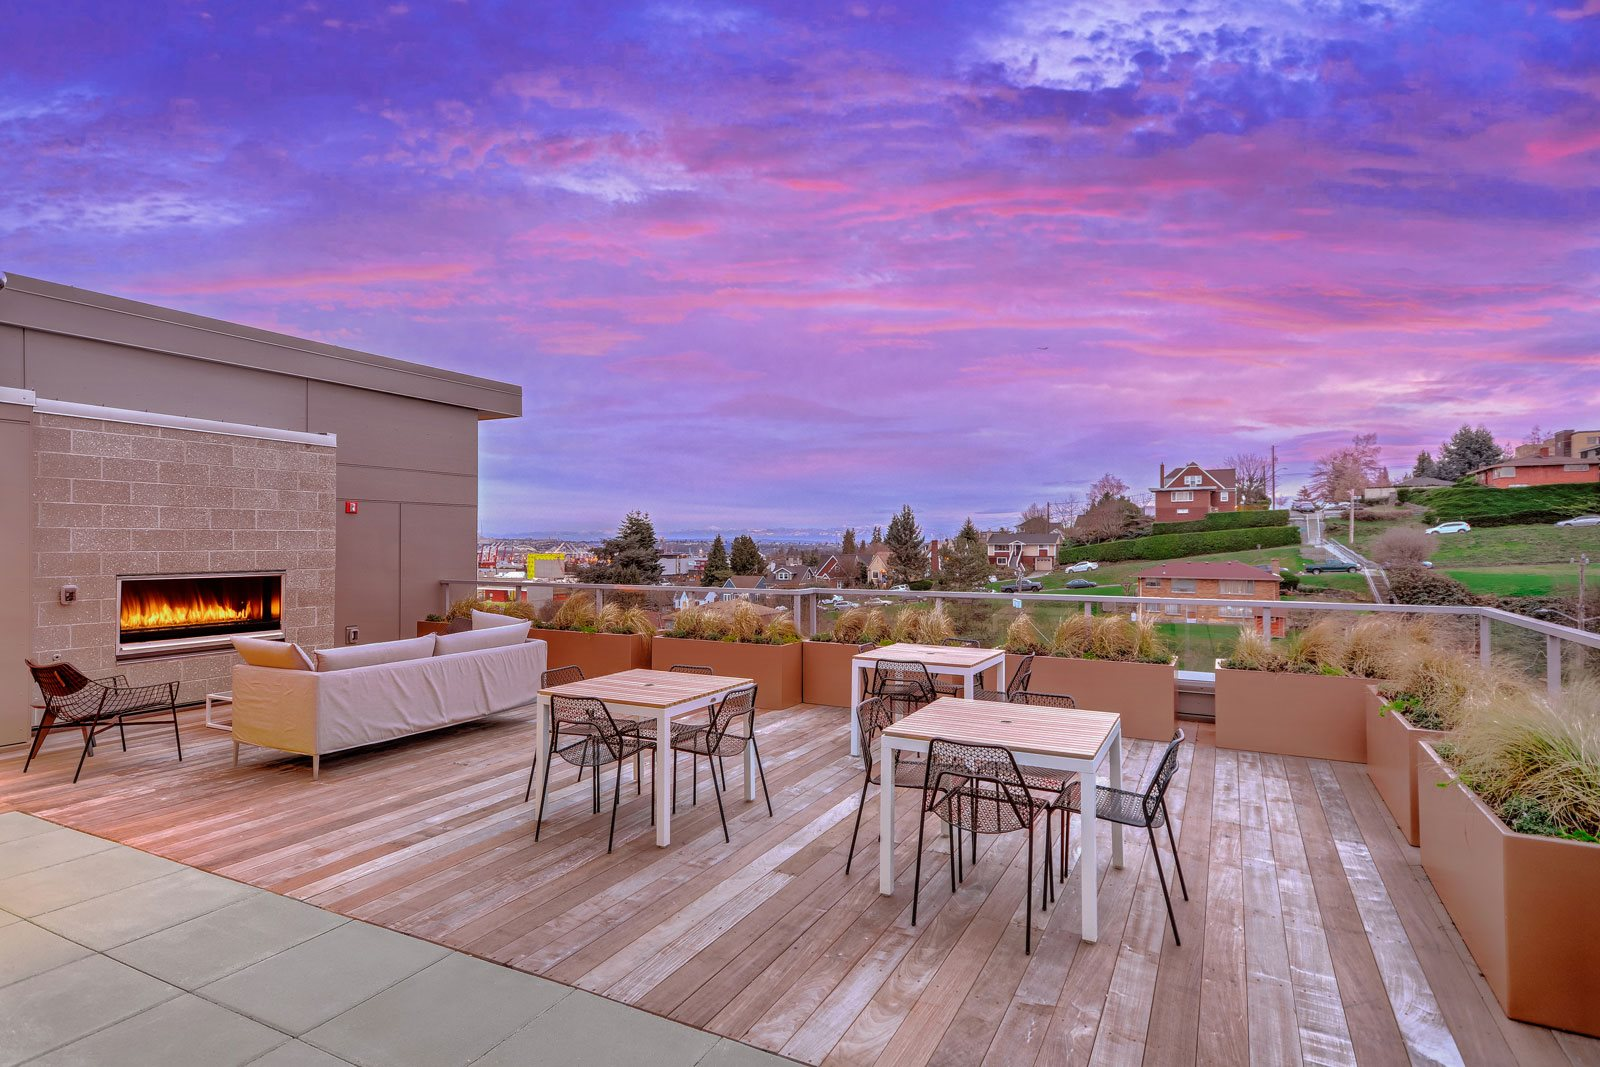 Rooftop Lounge with Gorgeous Views at The Whittaker, 4755 Fauntleroy Way, Seattle